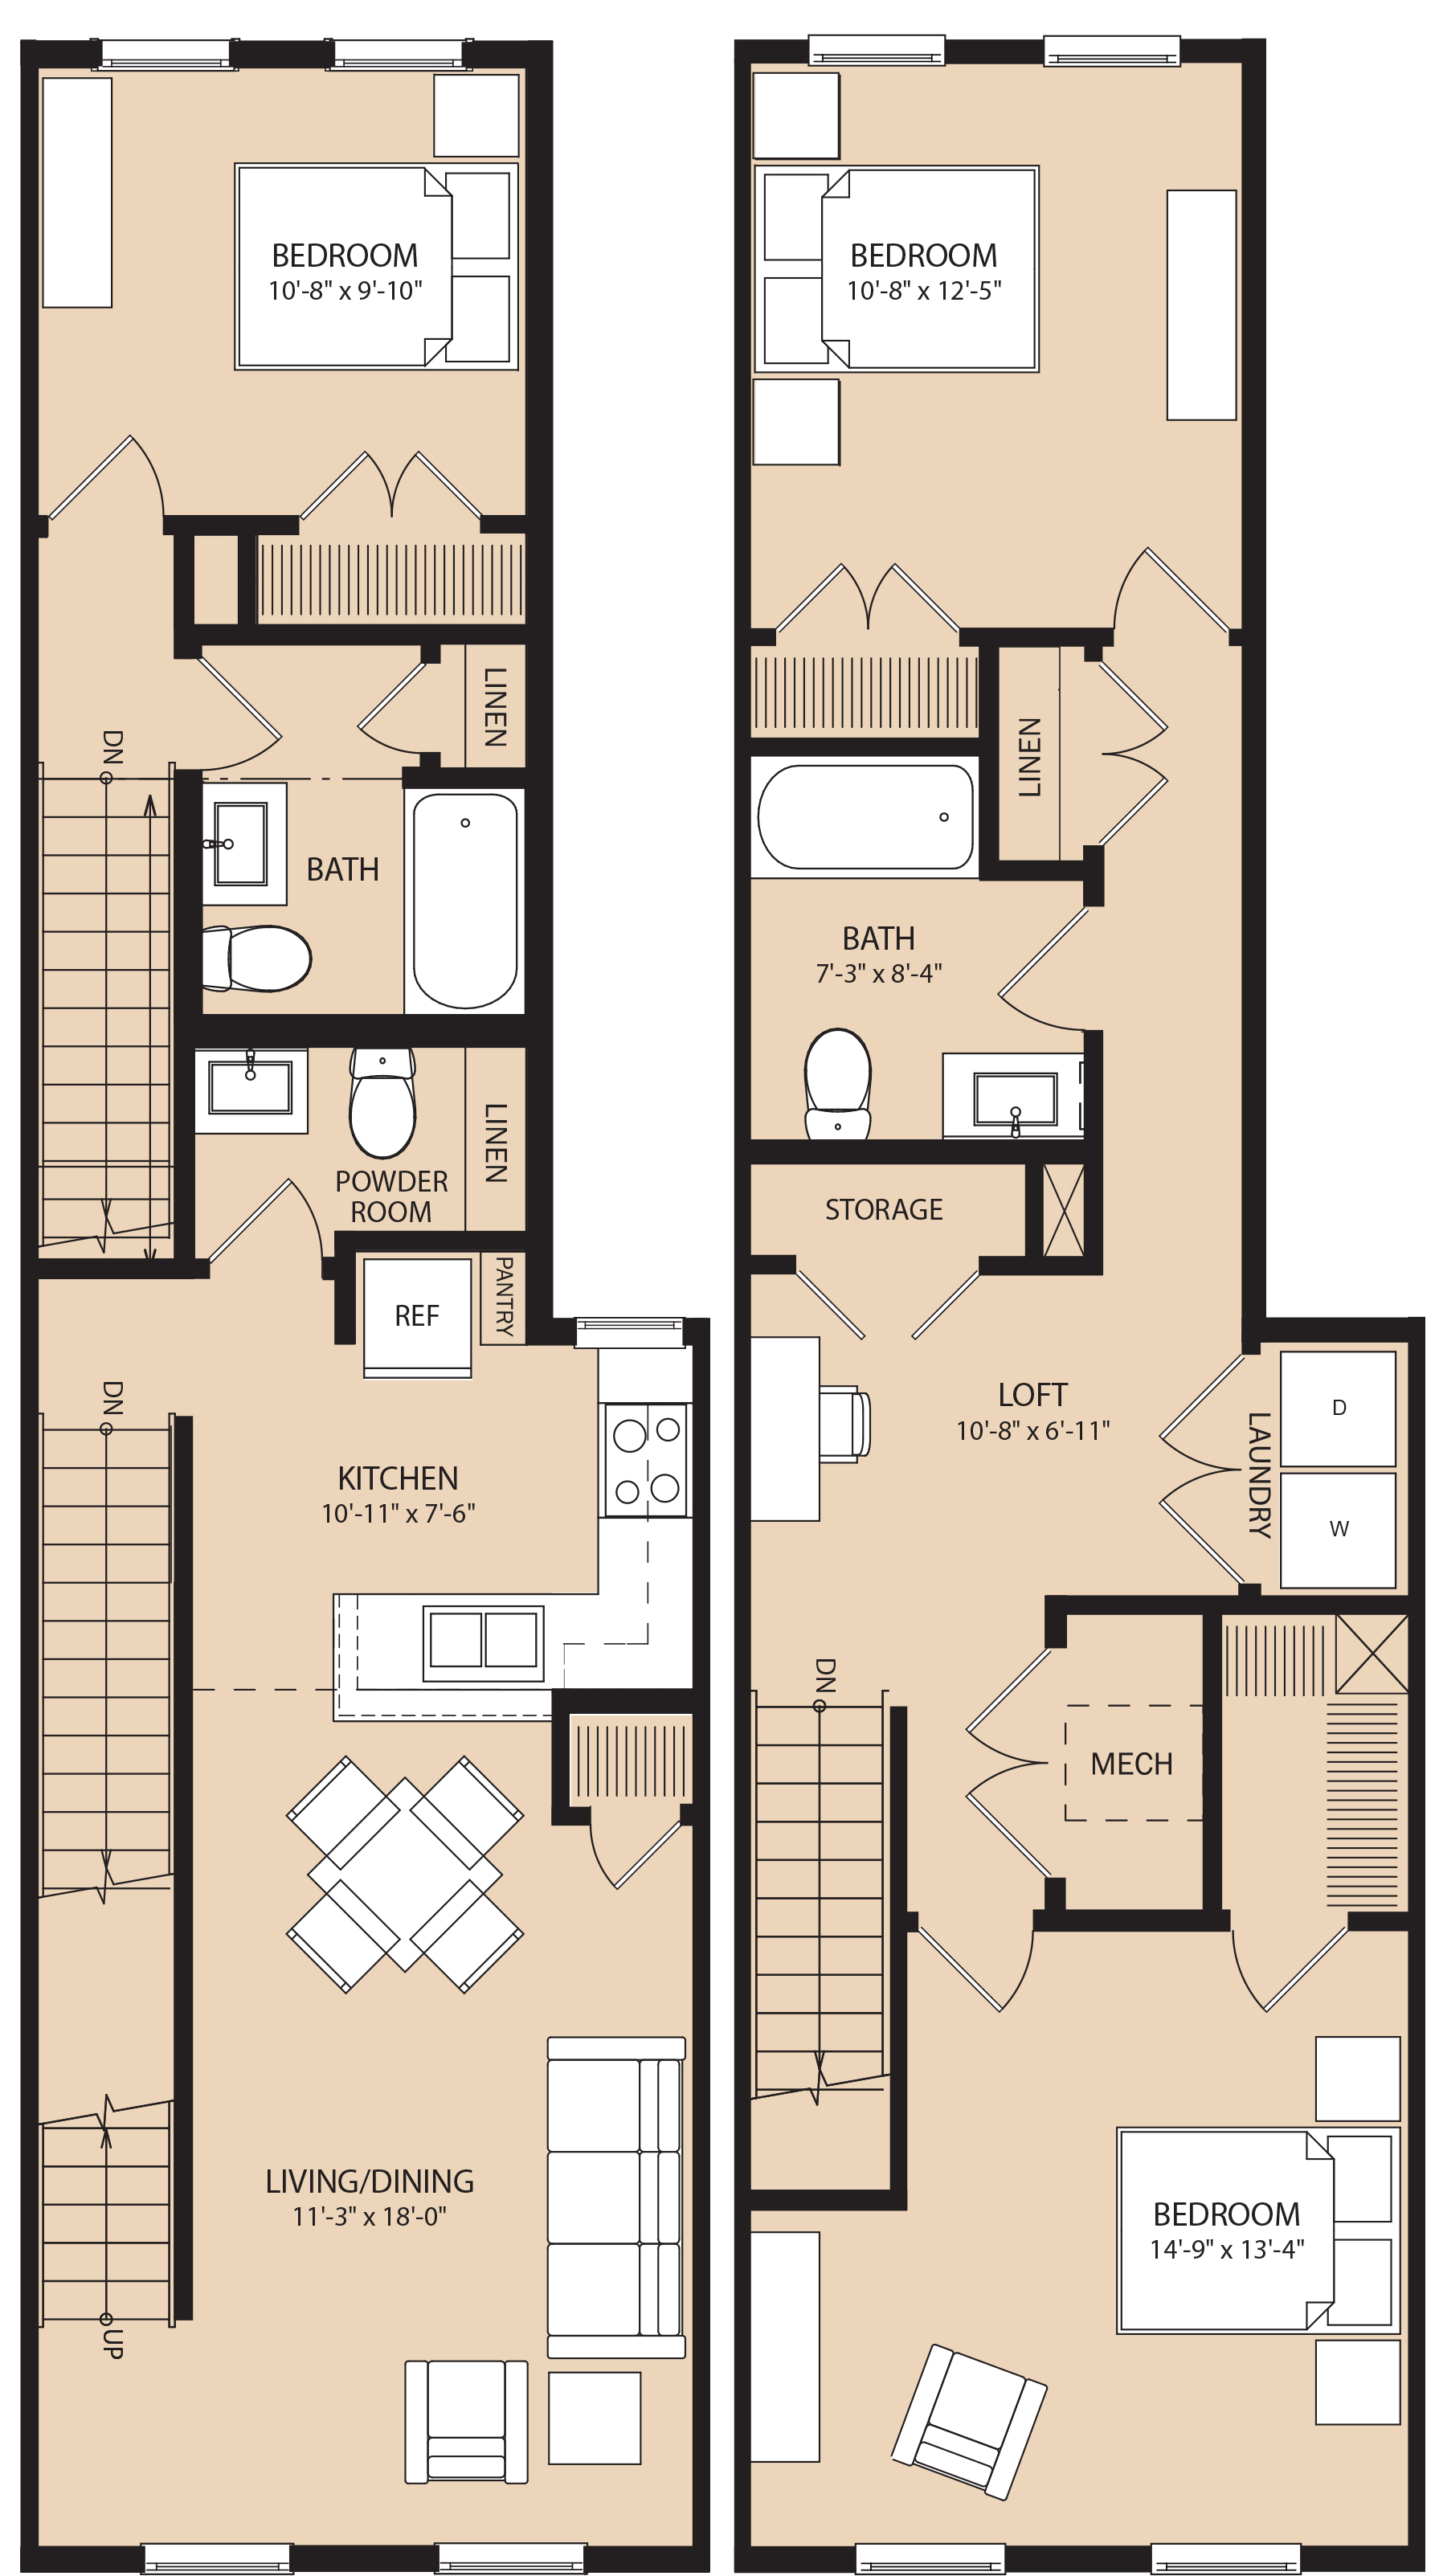 Brownstones at Diamond Street – Brownstone Floor Plans